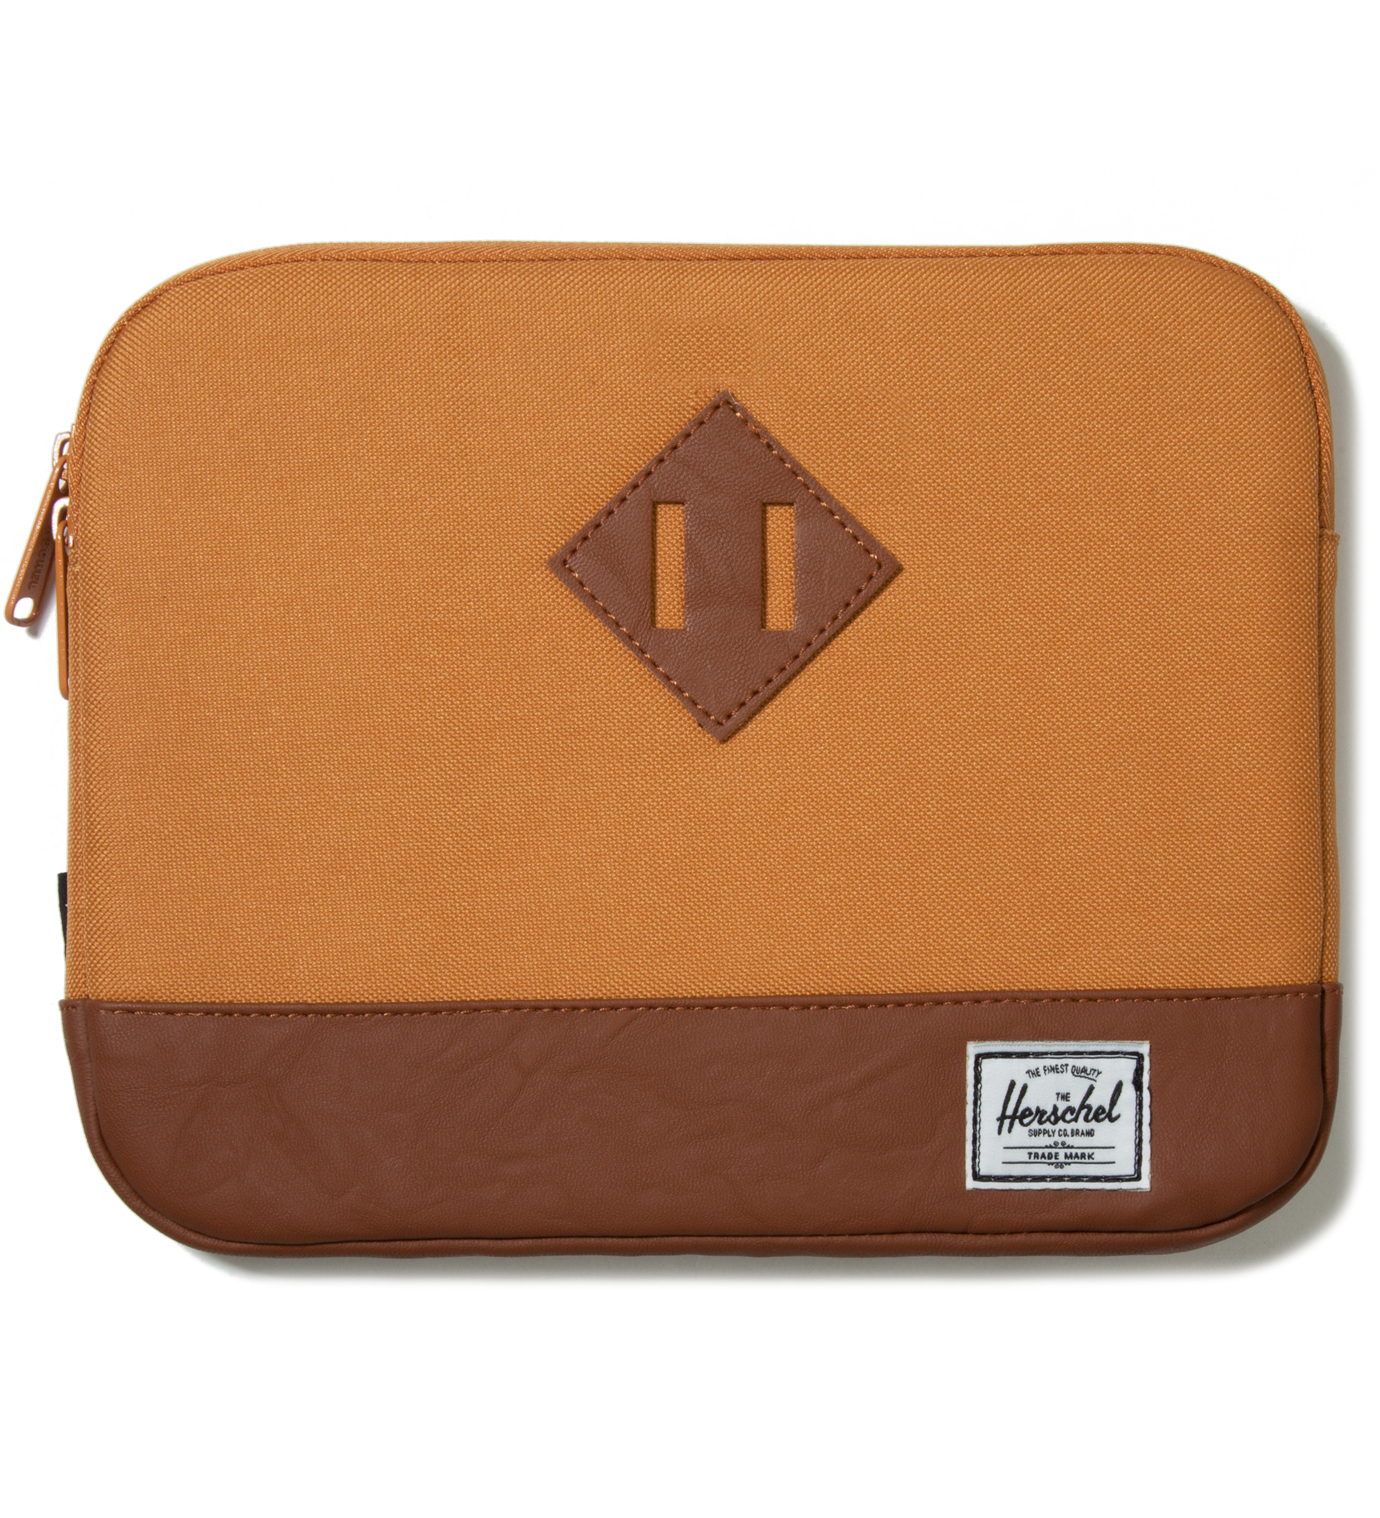 Herschel Supply Co. Butterscotch Heritage iPad Sleeve